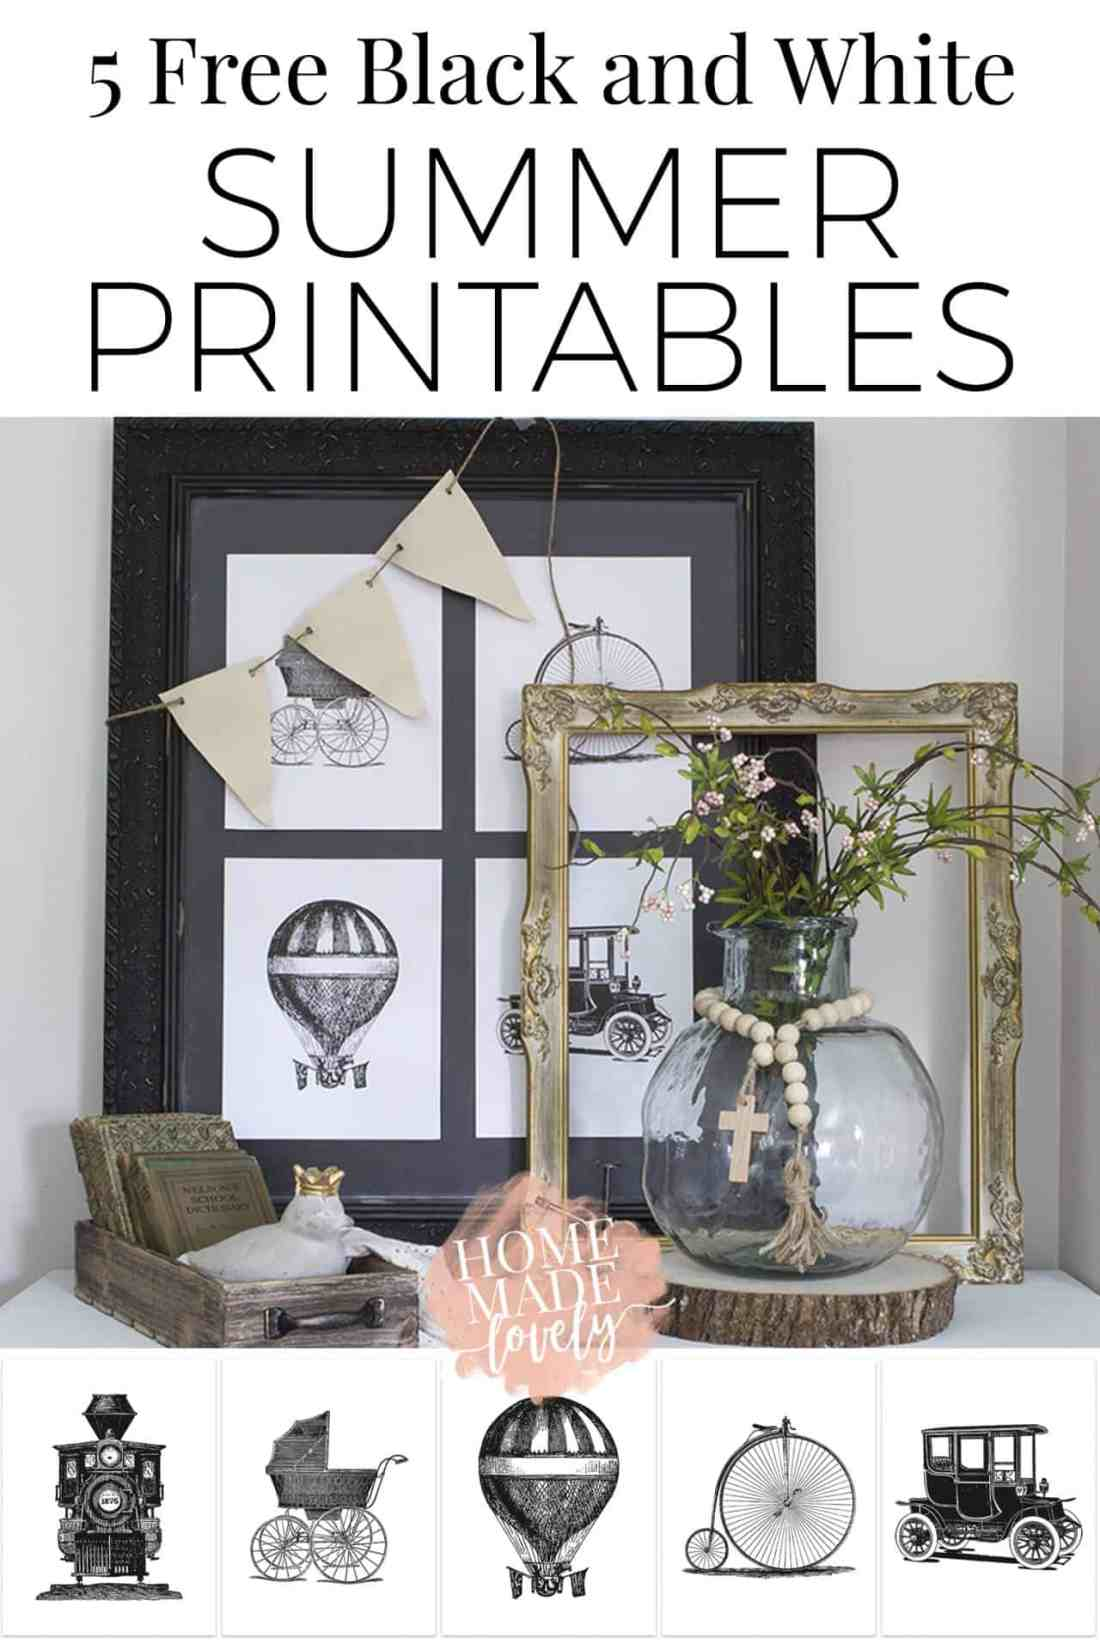 Love vintage farmhouse style? Here are 5 free black and white summer printables for you to use in your home, featuring retro modes of transportation: a bicycle, vintage car, baby carriage, hot air balloon and steam train! Plus a few words from my momma heart to yours. #freeprintables